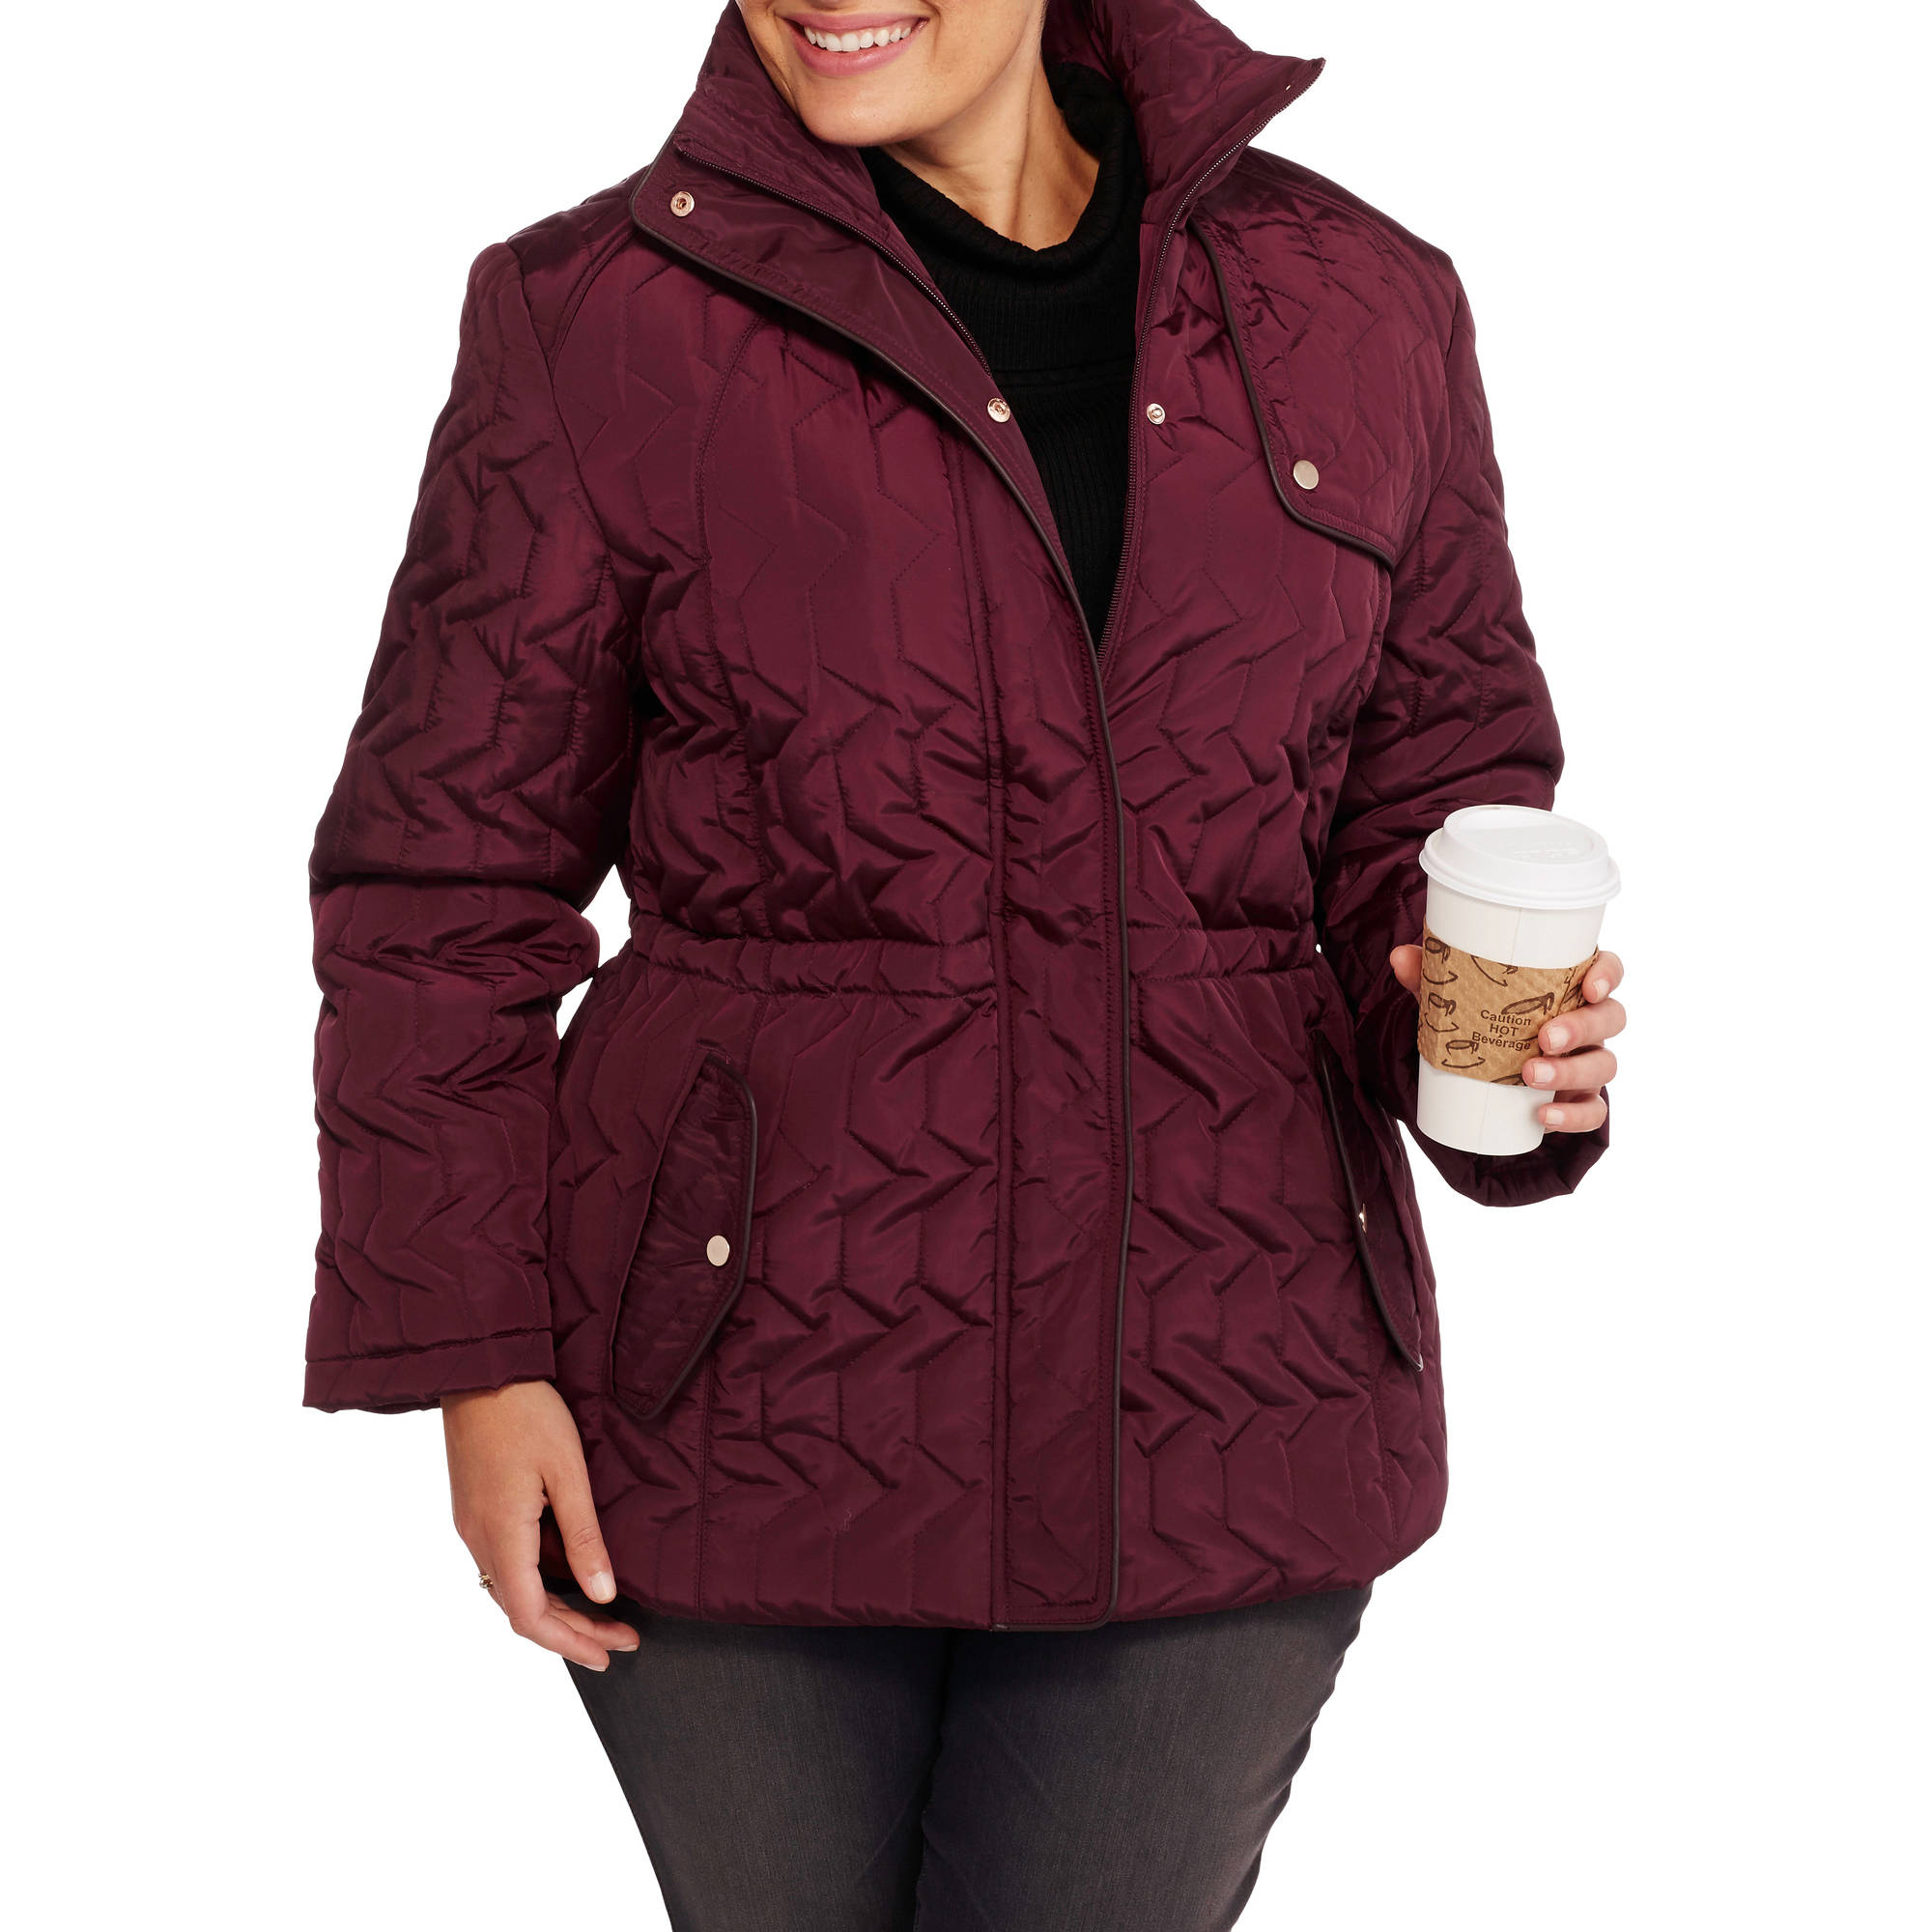 Women's Plus-Size Midweight Jacket with Flattering Side Cinching